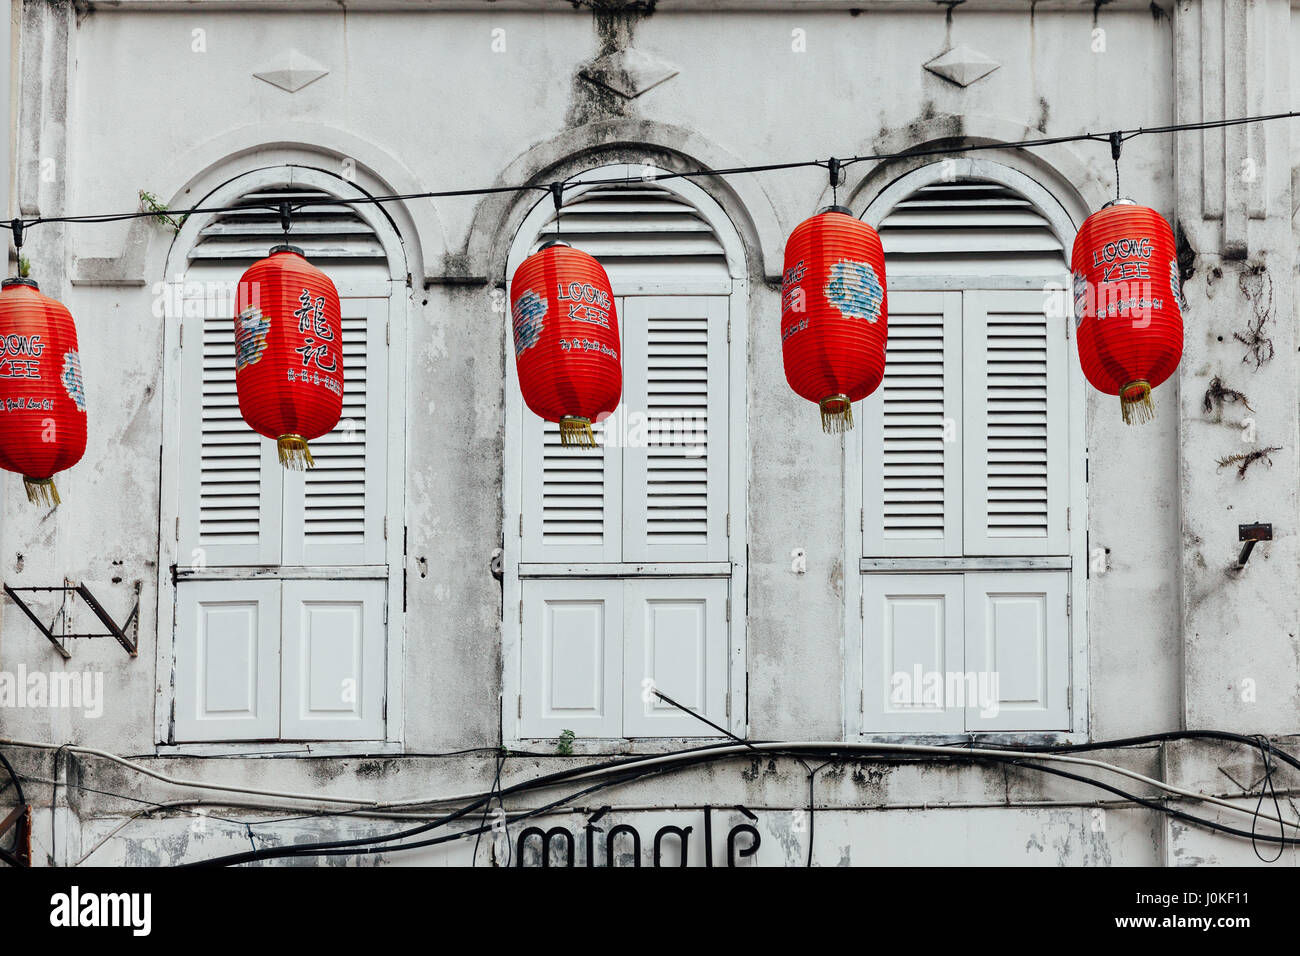 Kuala Lumpur, Malaysia - September 14, 2016: Facade of the historical building decorated with red chinese lanterns - Stock Image